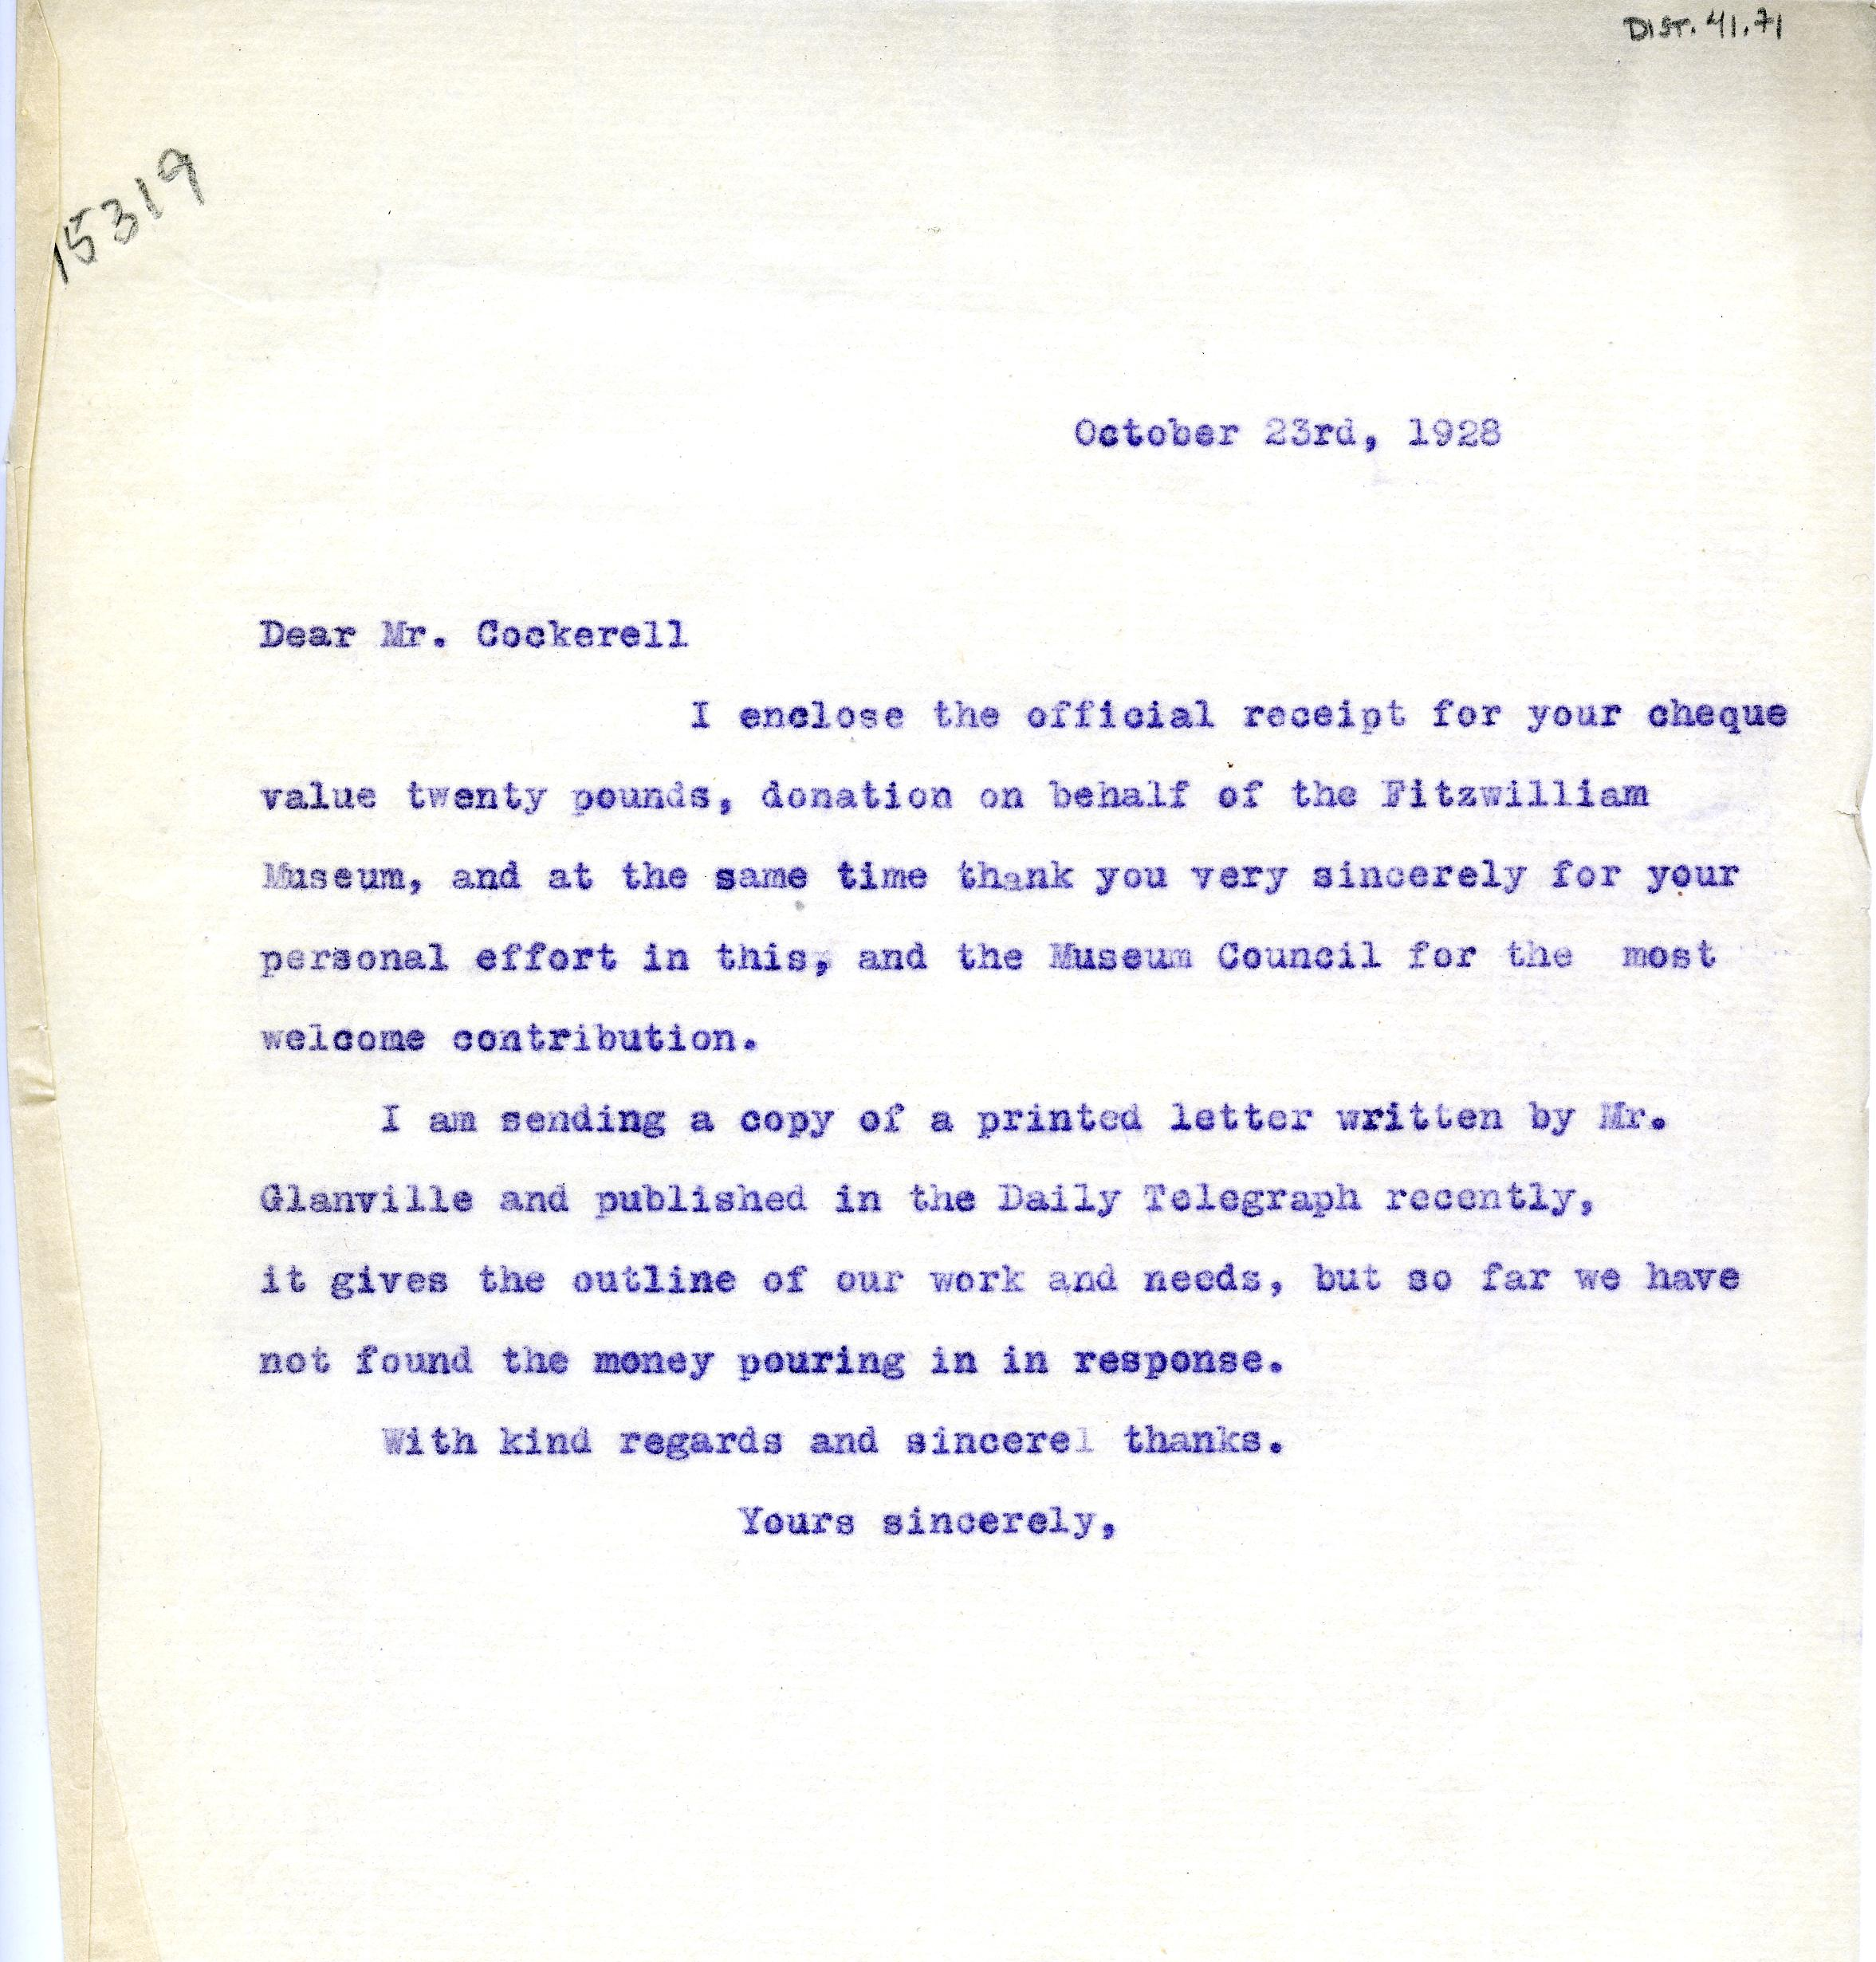 1922-76 Miscellaneous correspondence with museums DIST.41.71